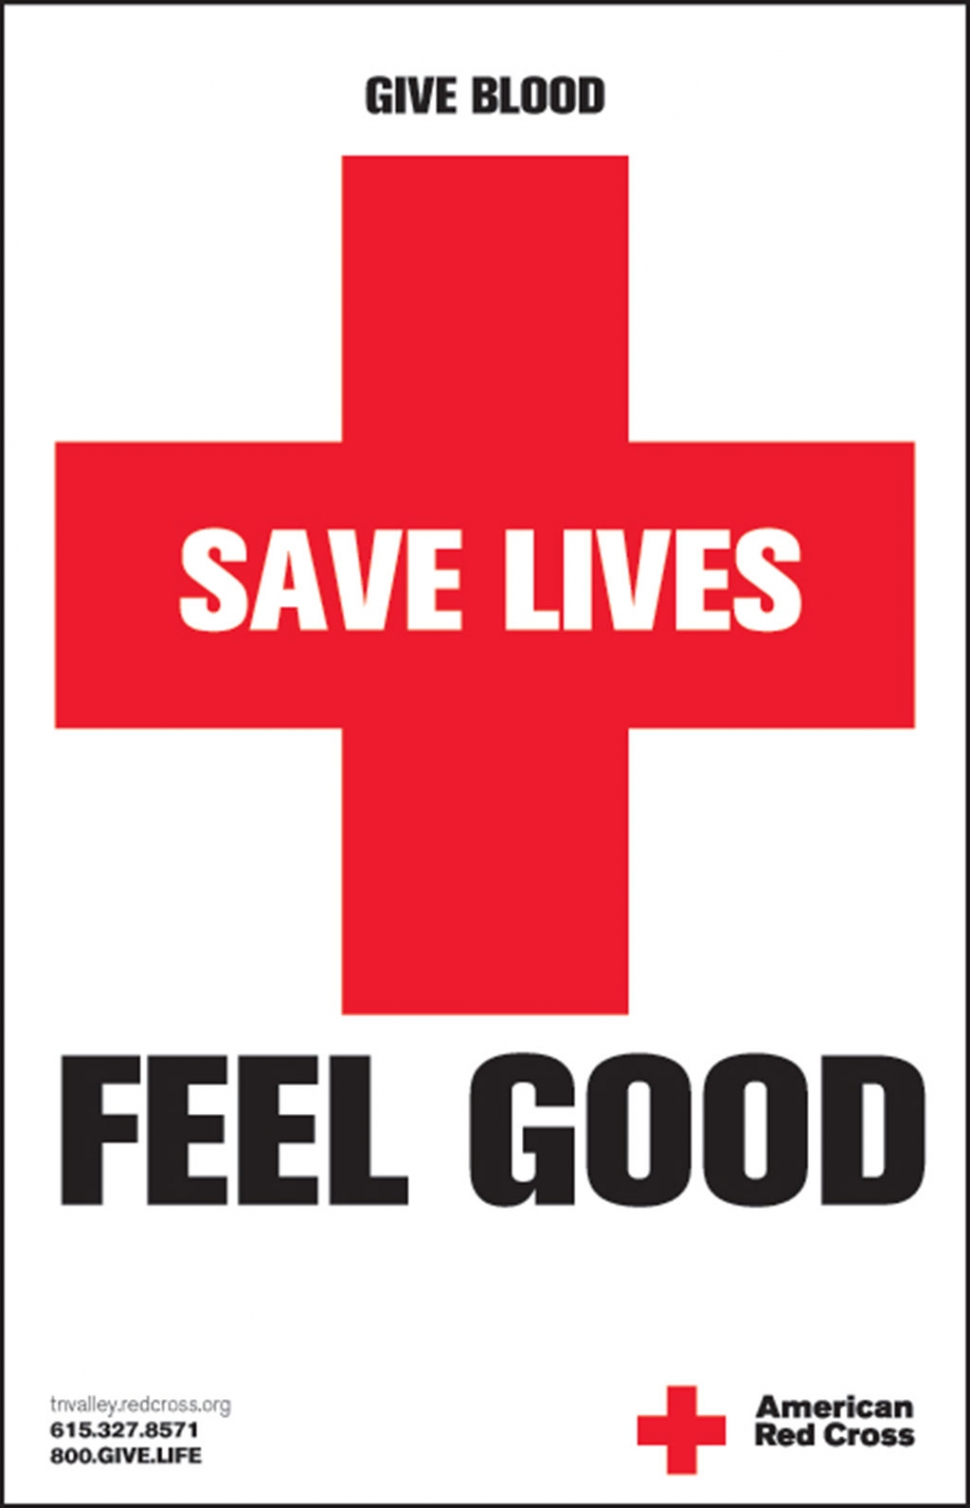 Give Thanks By Giving Blood Through The Red Cross This Holiday Season